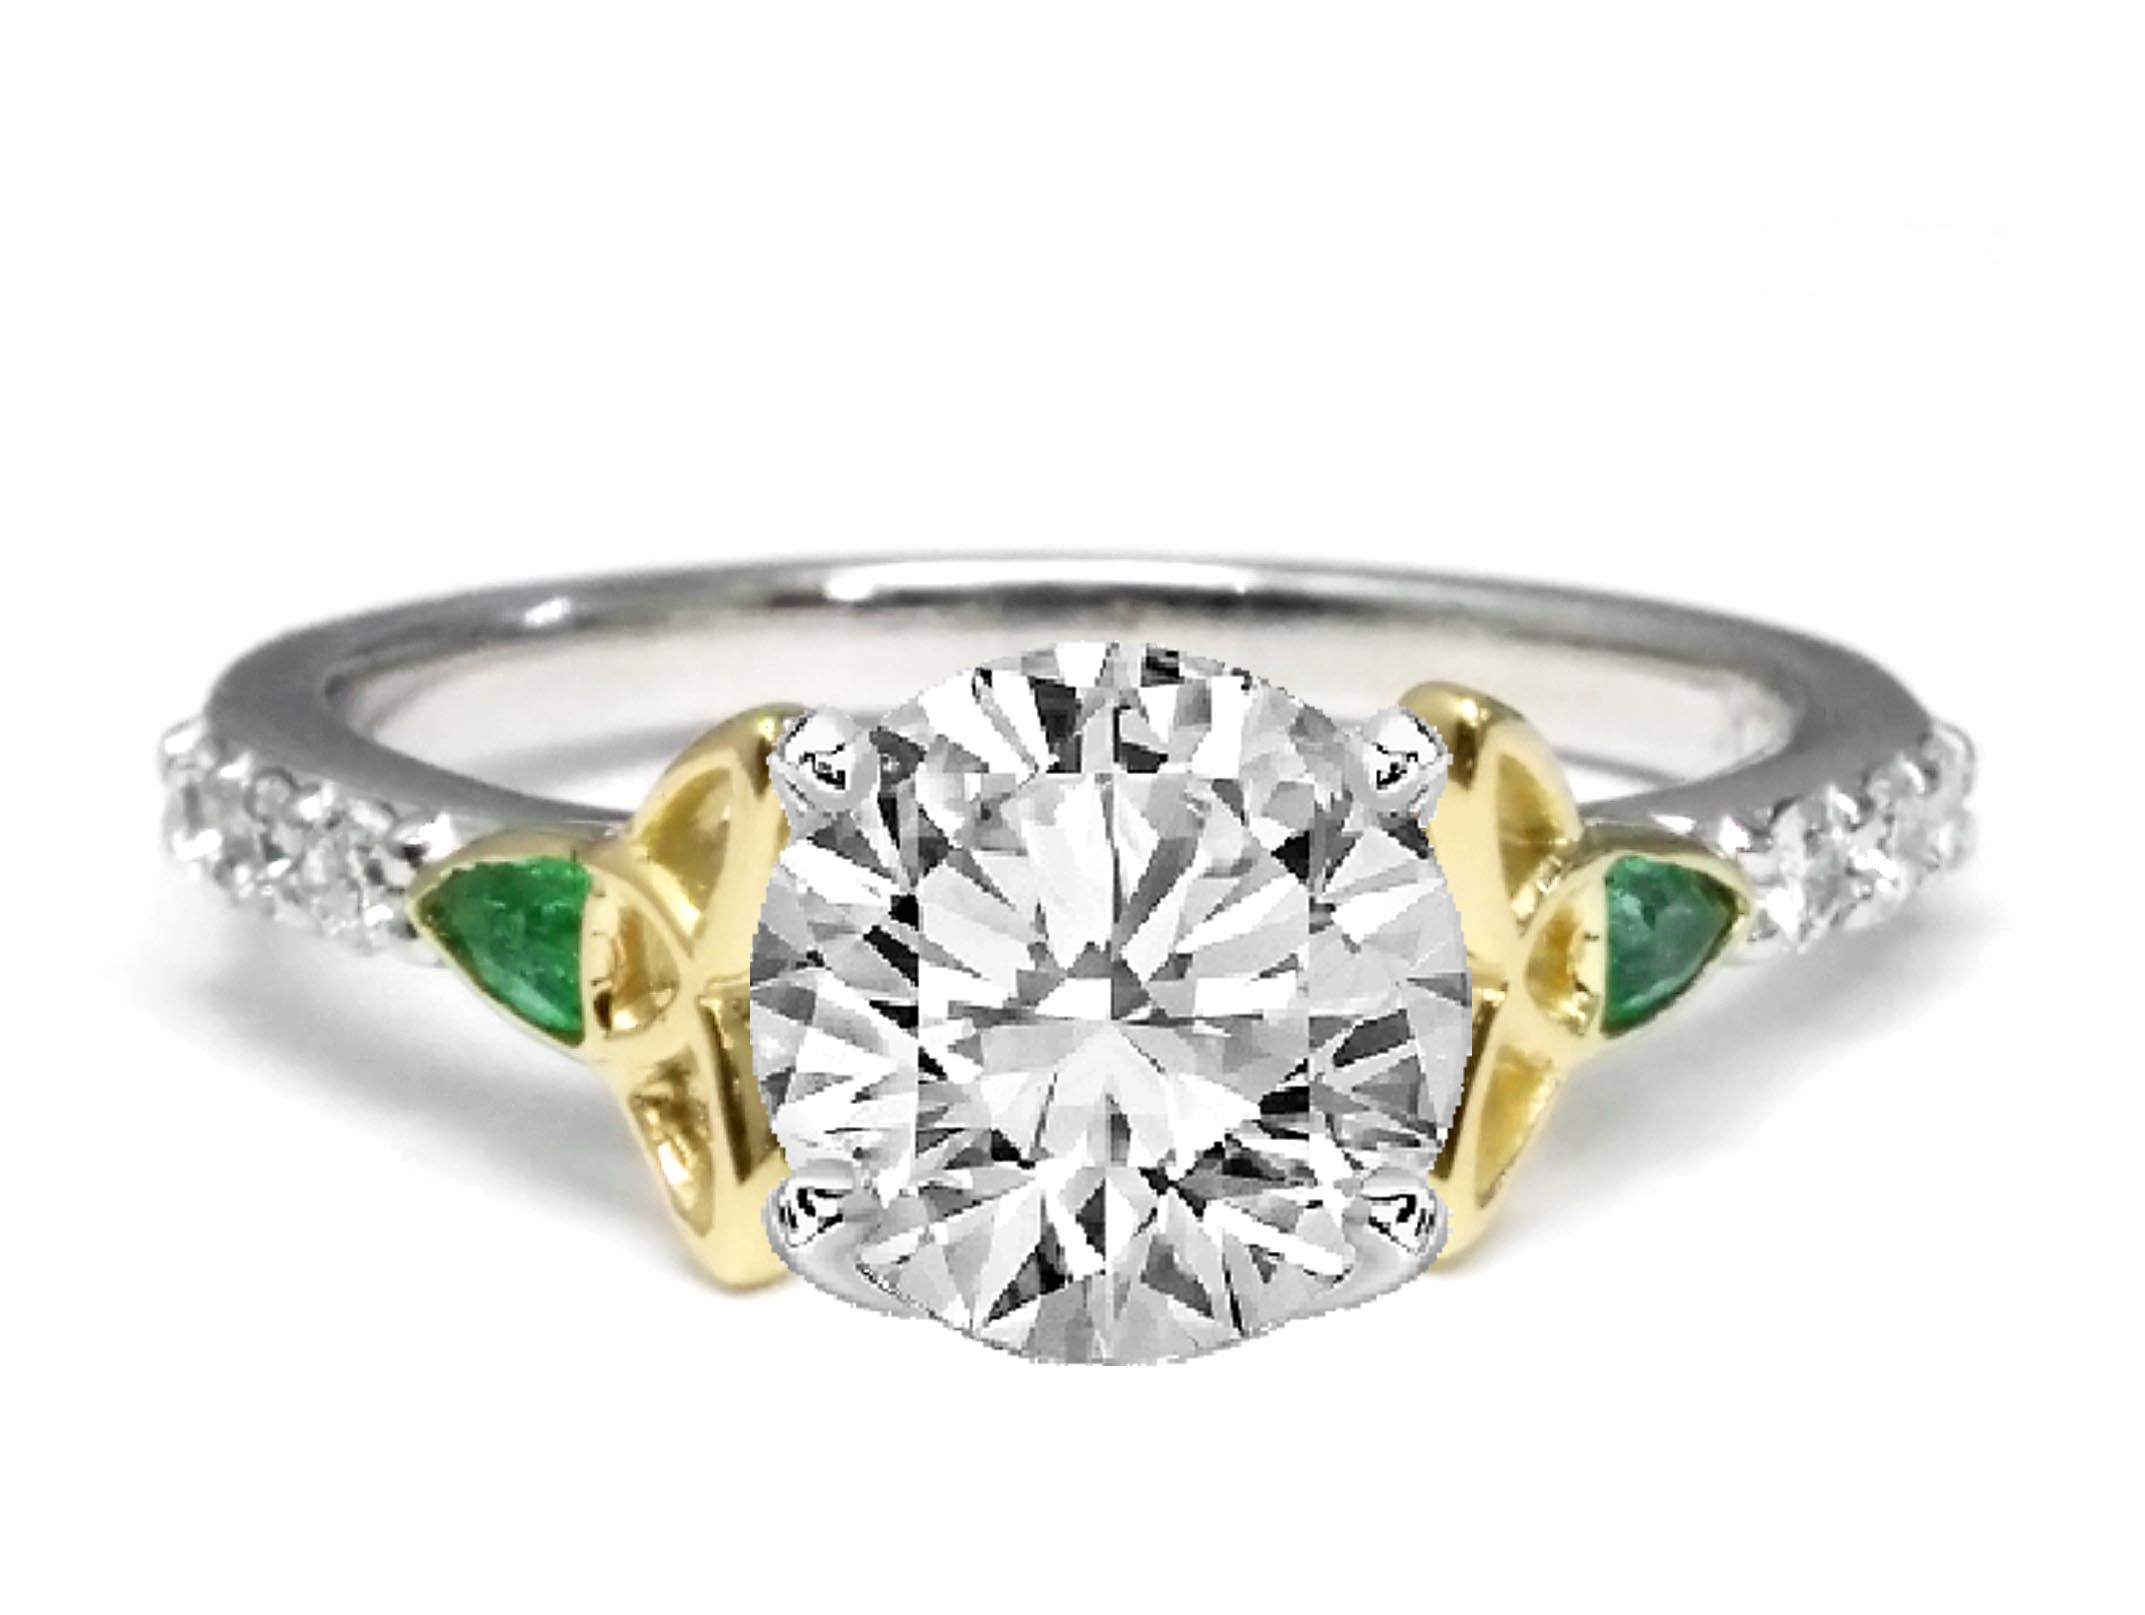 gem-stones - engagement rings from mdc diamonds nyc